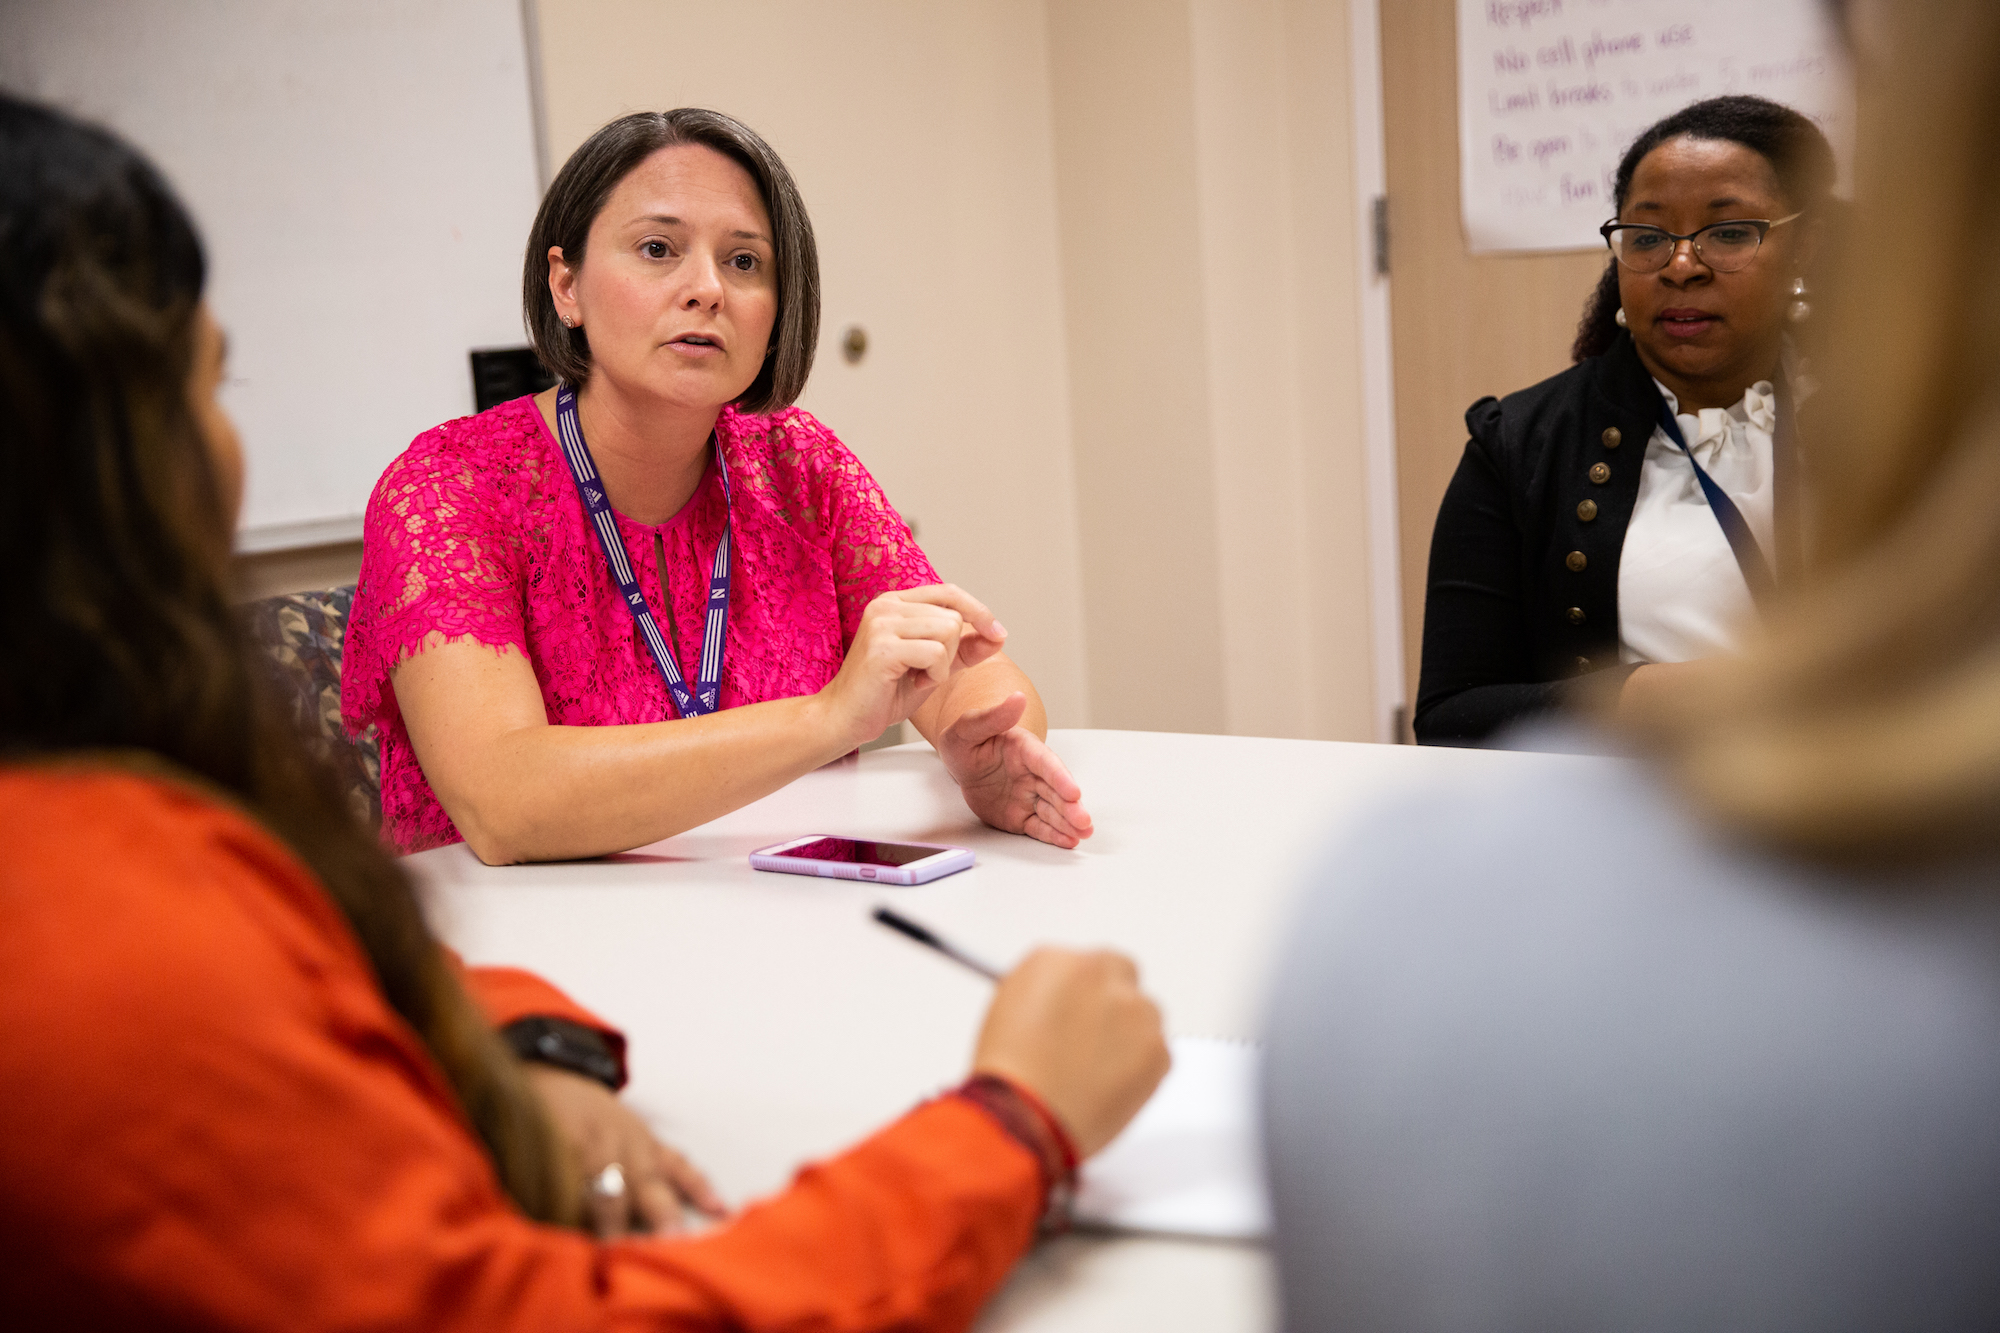 Tara Niendam, left, meets with staff at the UC Davis Behavioral Health Center in Sacramento. She is helping to lead efforts to expand early psychosis intervention programs statewide. Photo by Max Whittaker for CALmatters